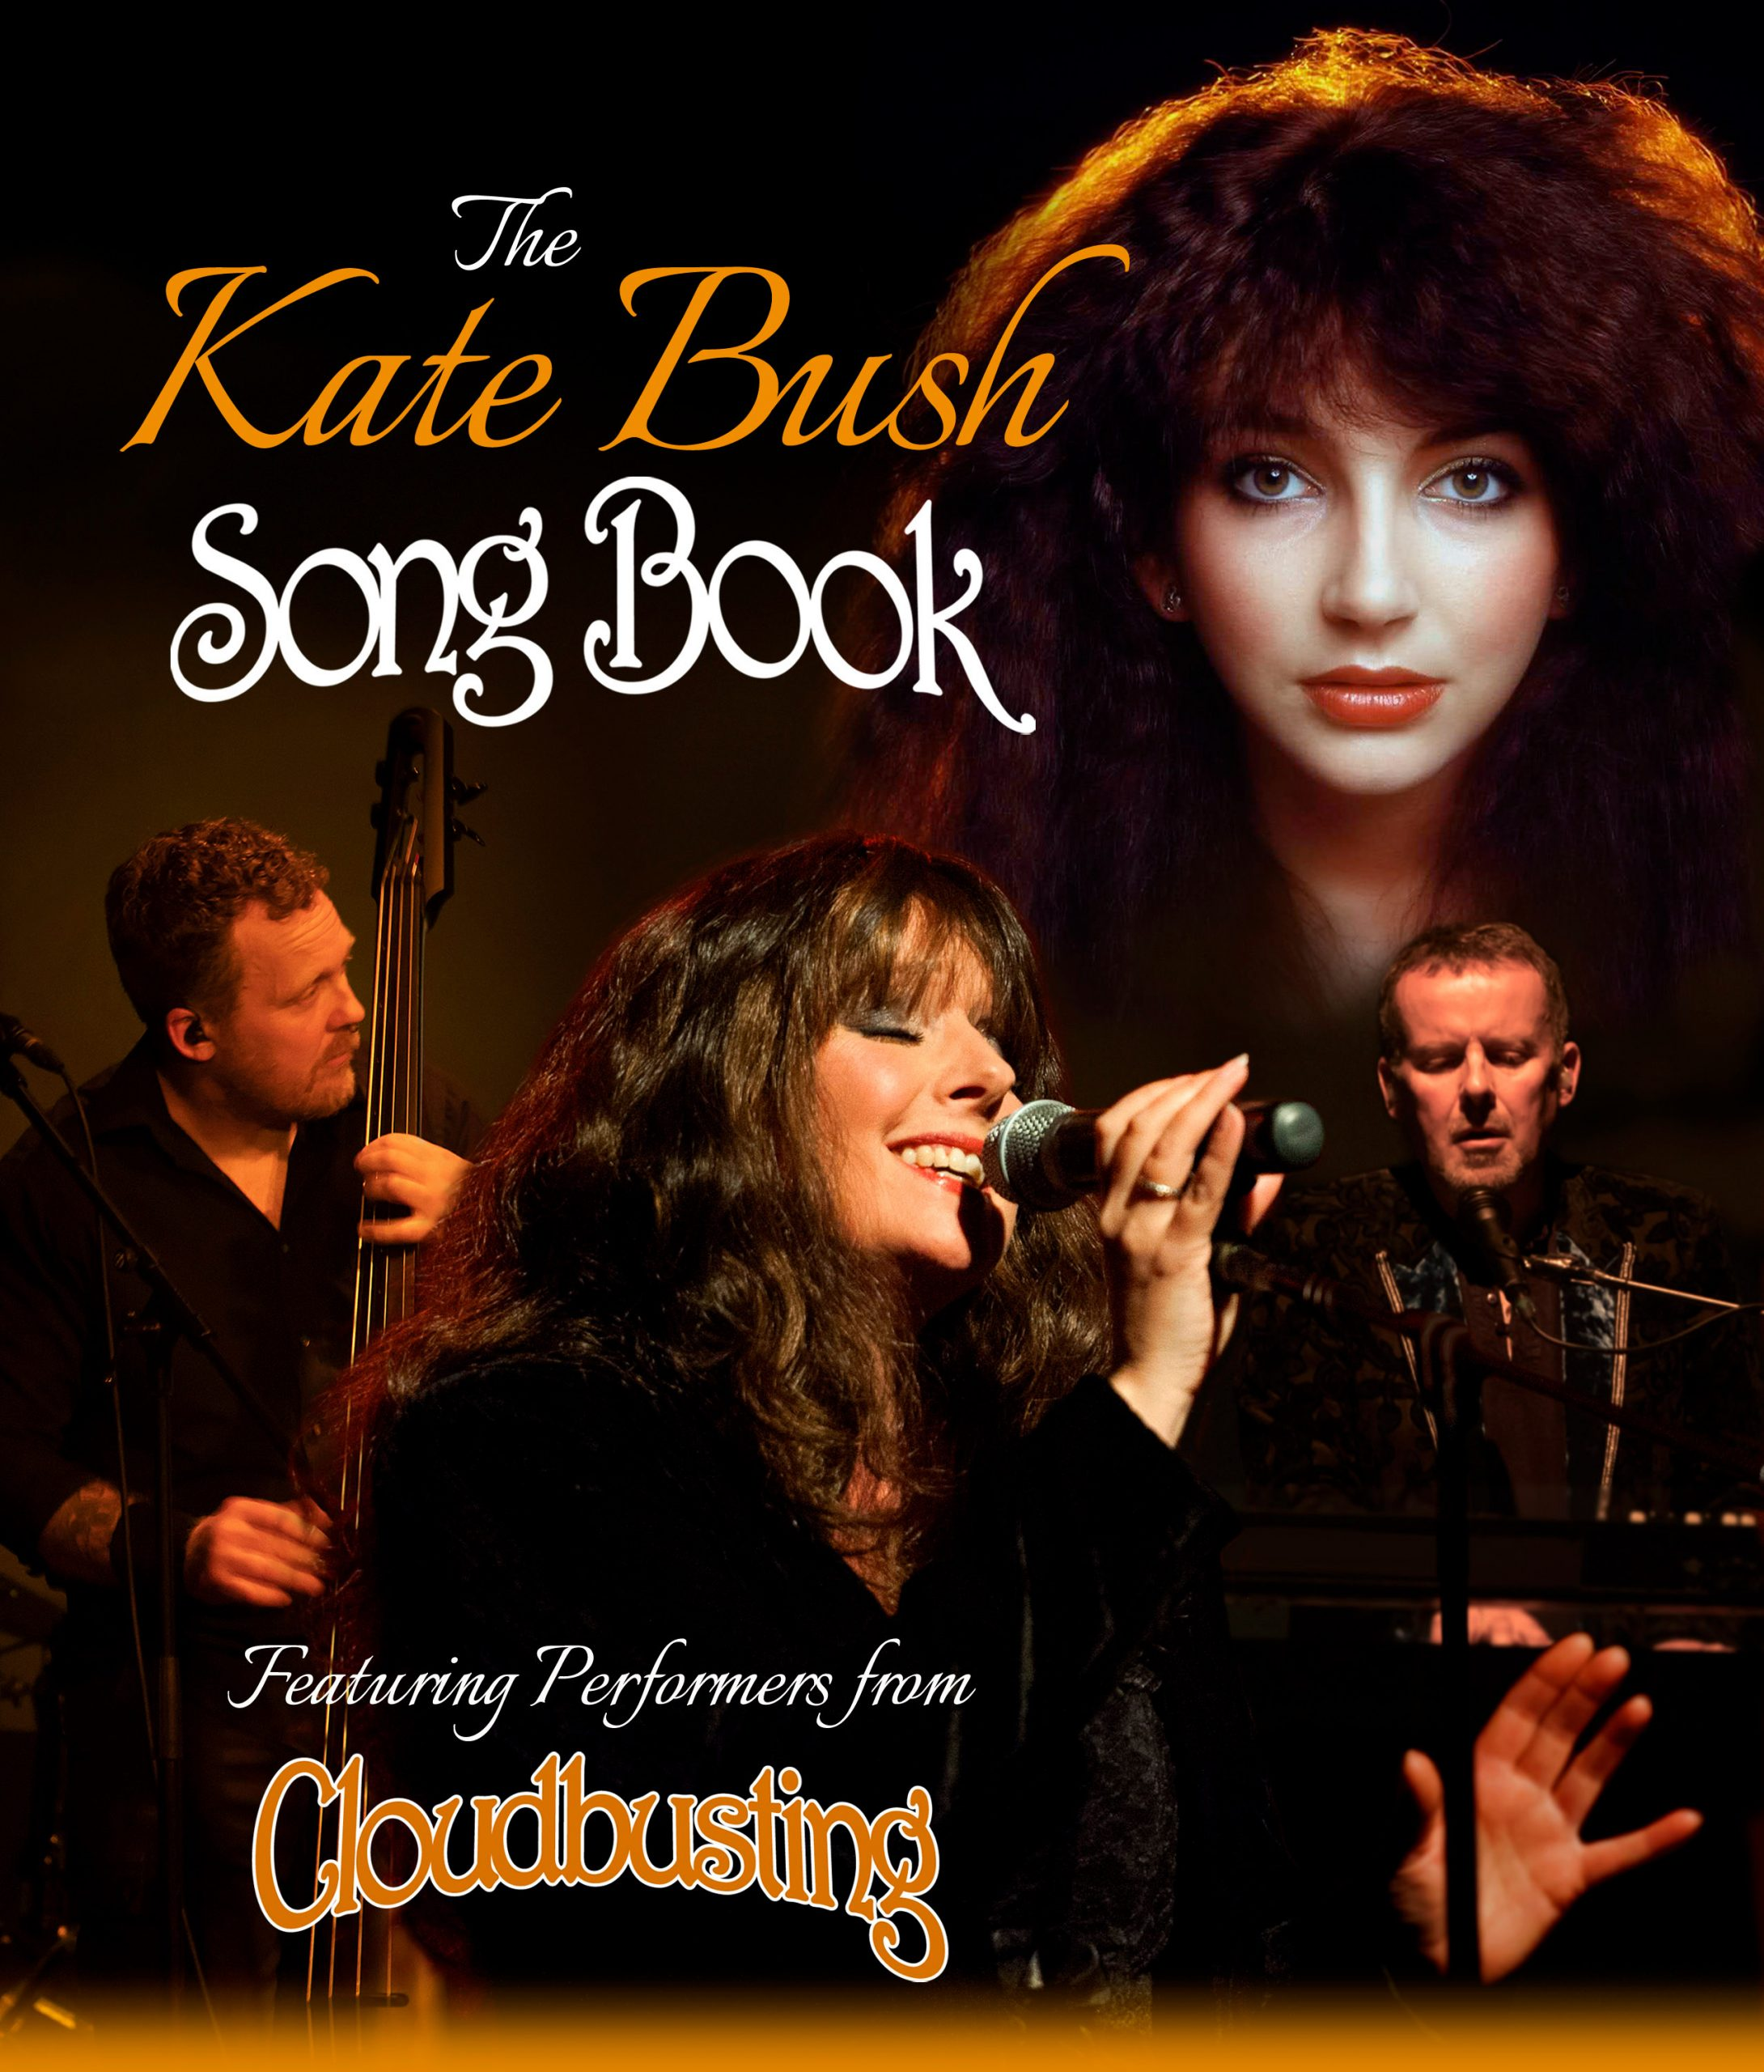 The Kate Bush Song Book